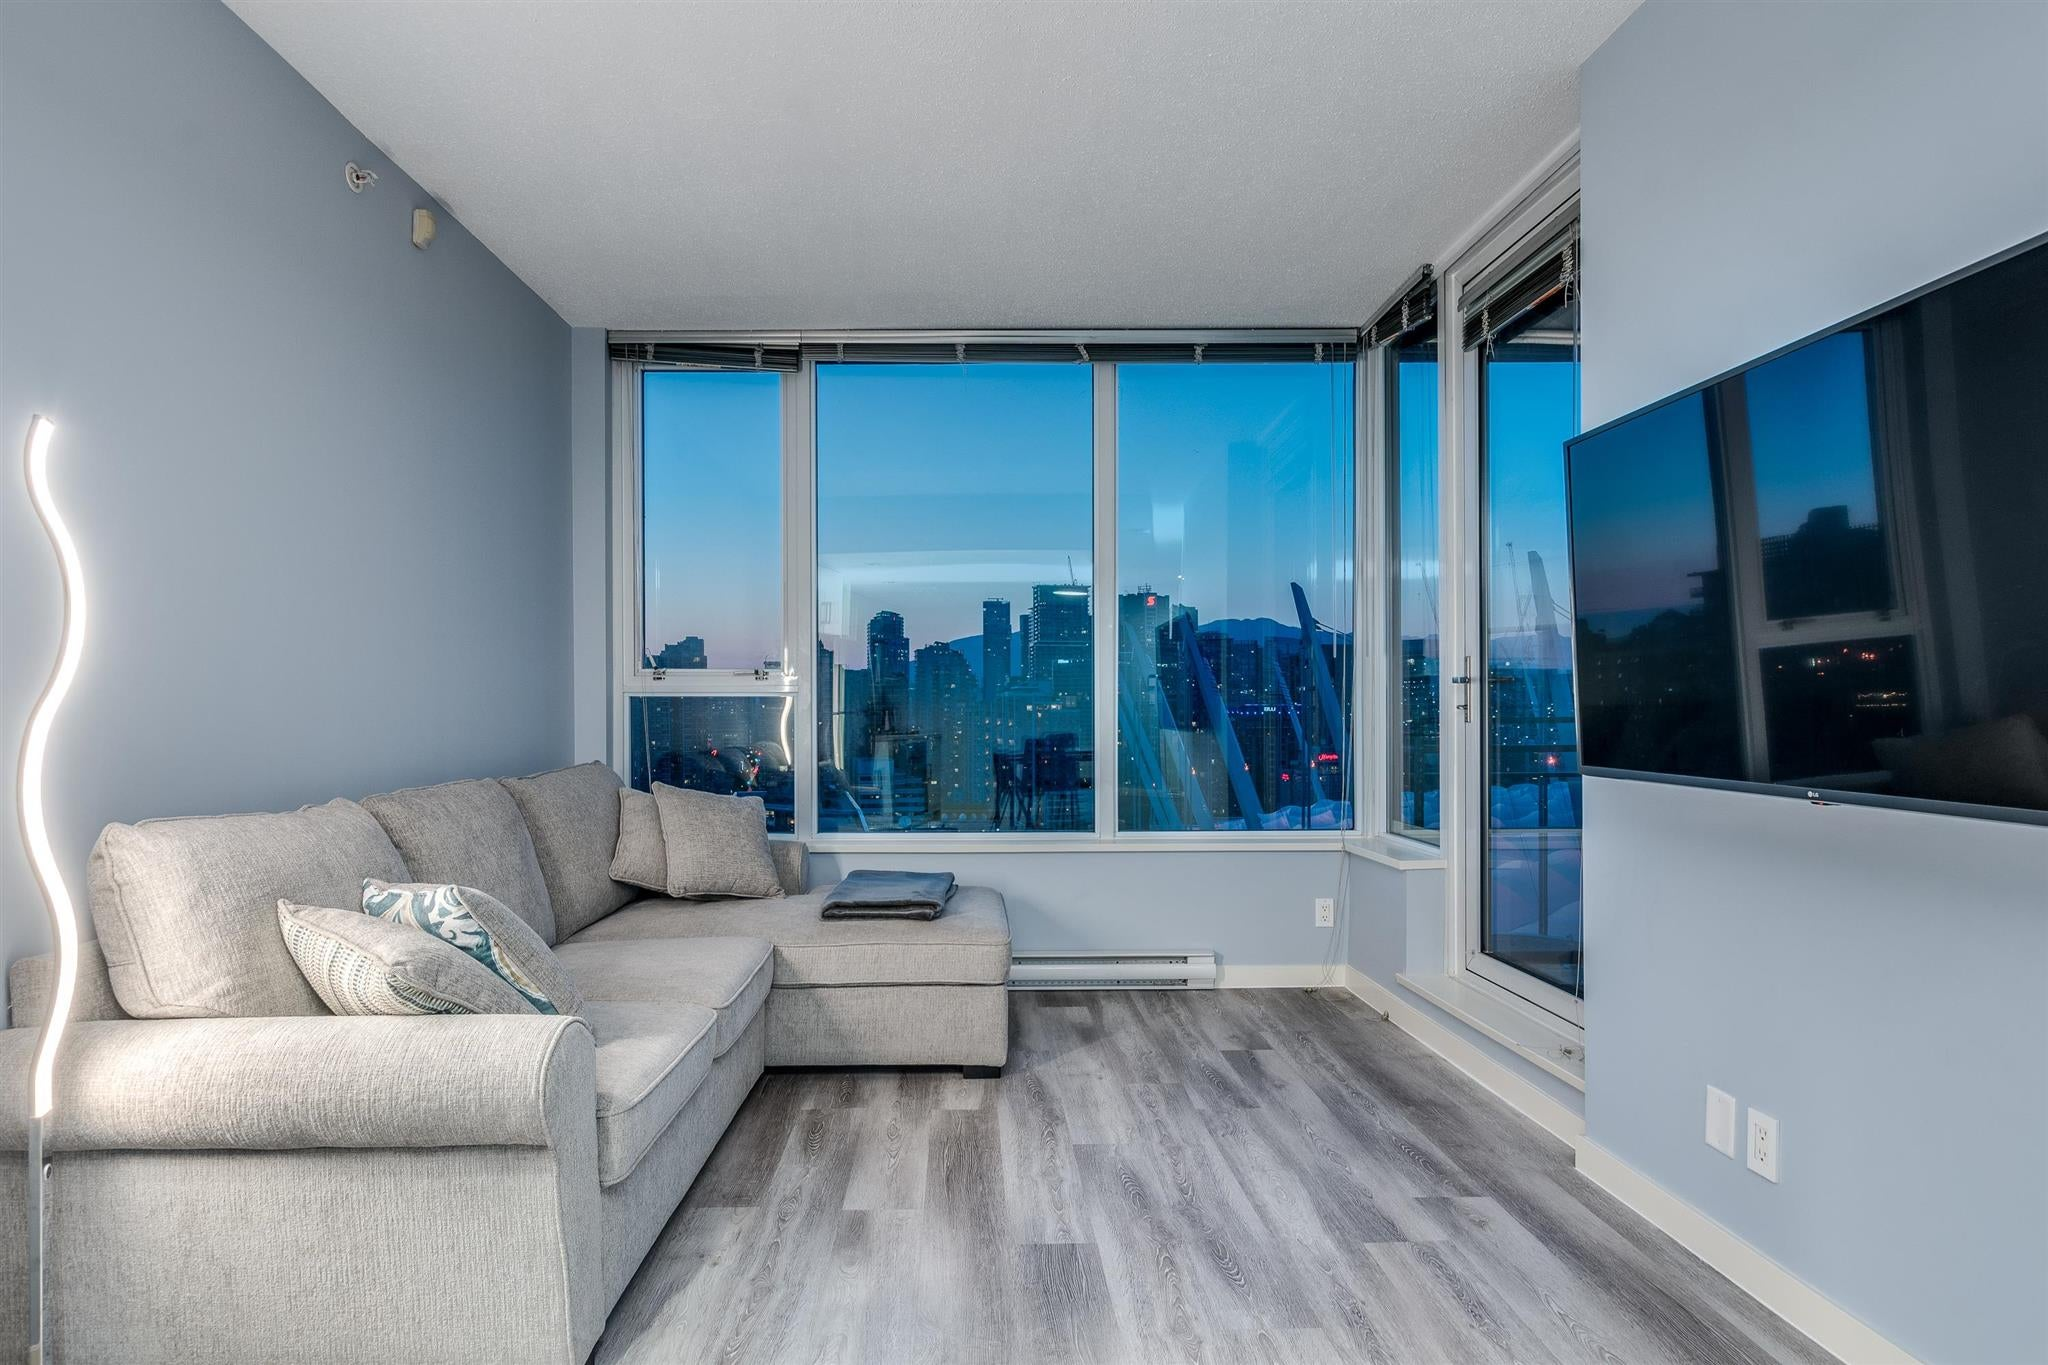 3207 33 SMITHE STREET - Yaletown Apartment/Condo for sale, 1 Bedroom (R2600855) - #1